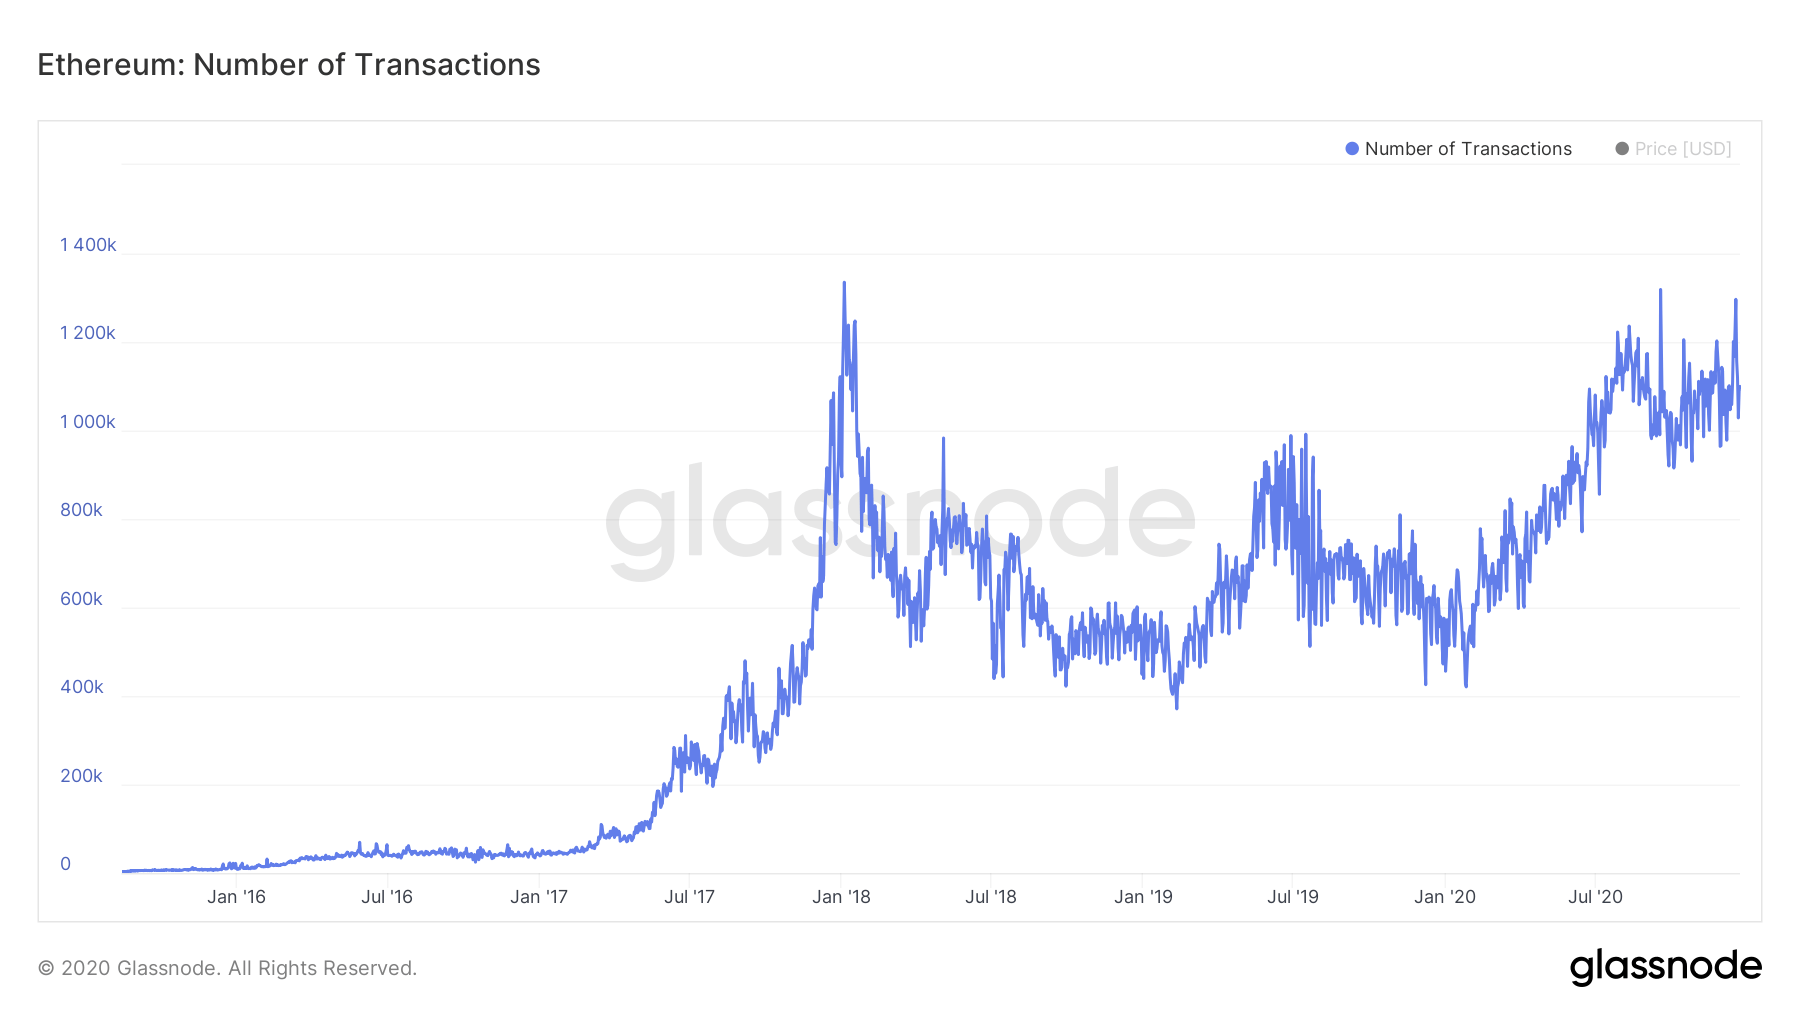 ETH daily transactions chart